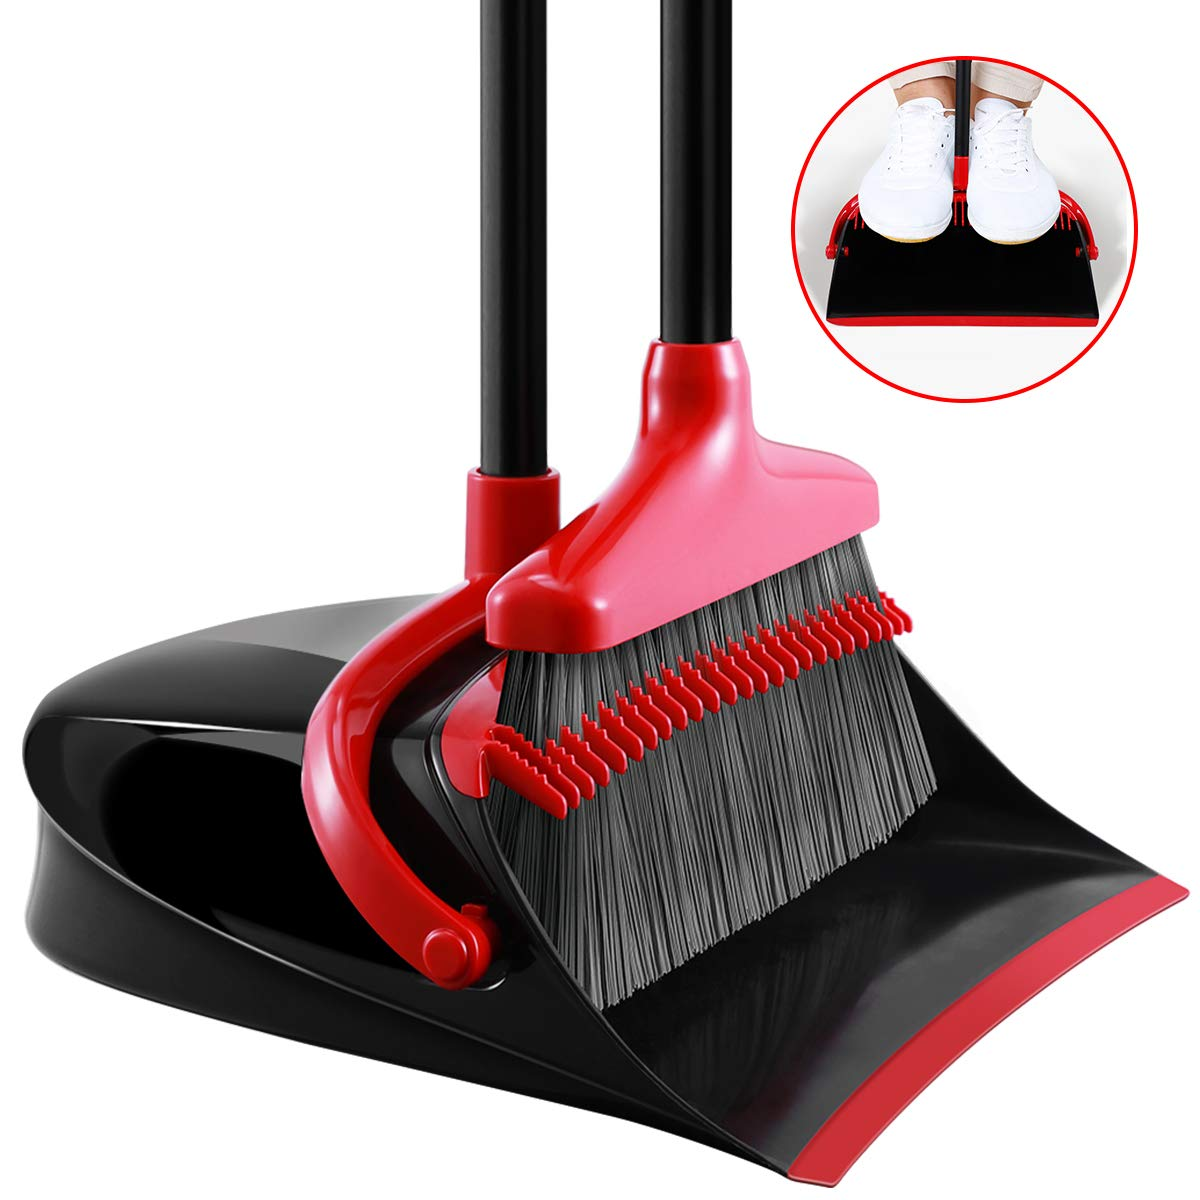 Homemaxs Broom and Dustpan Set, [Newest 2020] Long Handle